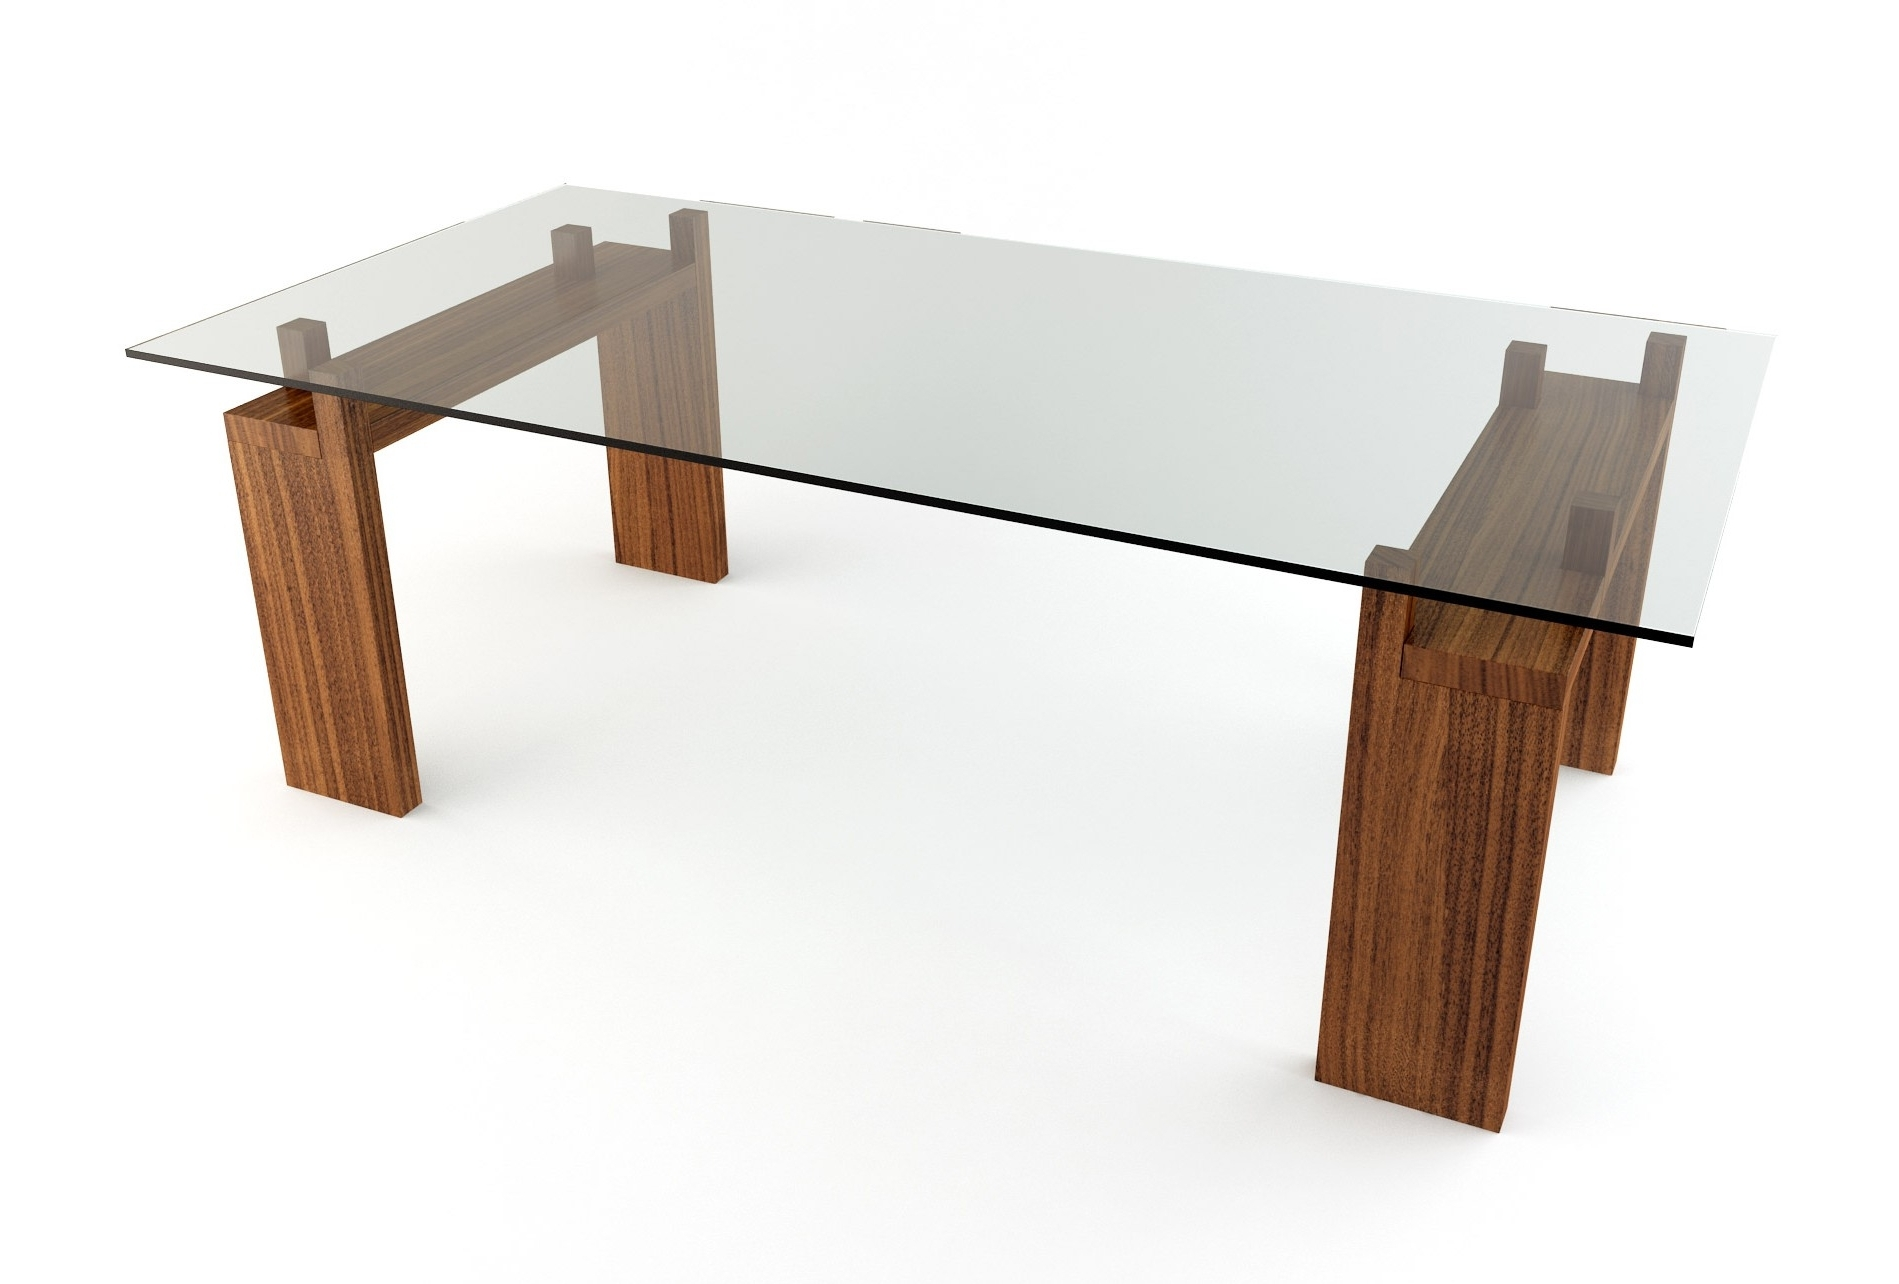 Glass Dining Tables With Wooden Legs For Current Dining Tables. Amusing Glass And Wood Dining Table And Chairs (Gallery 21 of 25)